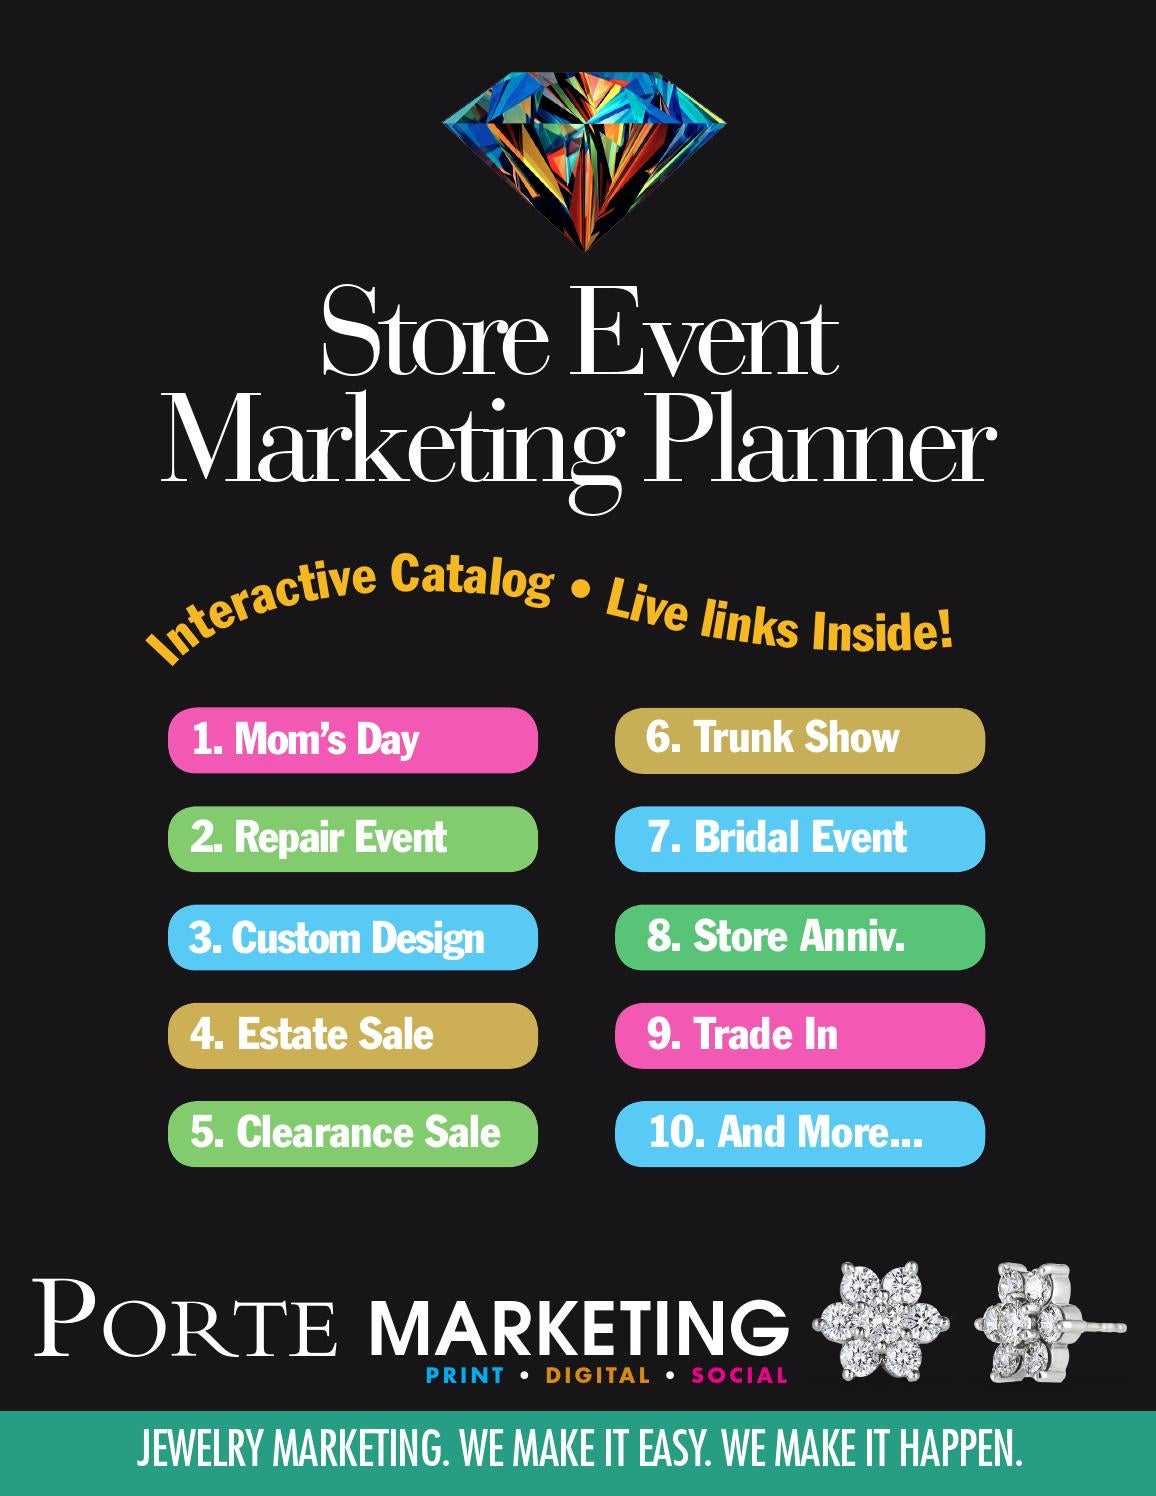 2016 porte store event marketing planner by james porte for Porte marketing